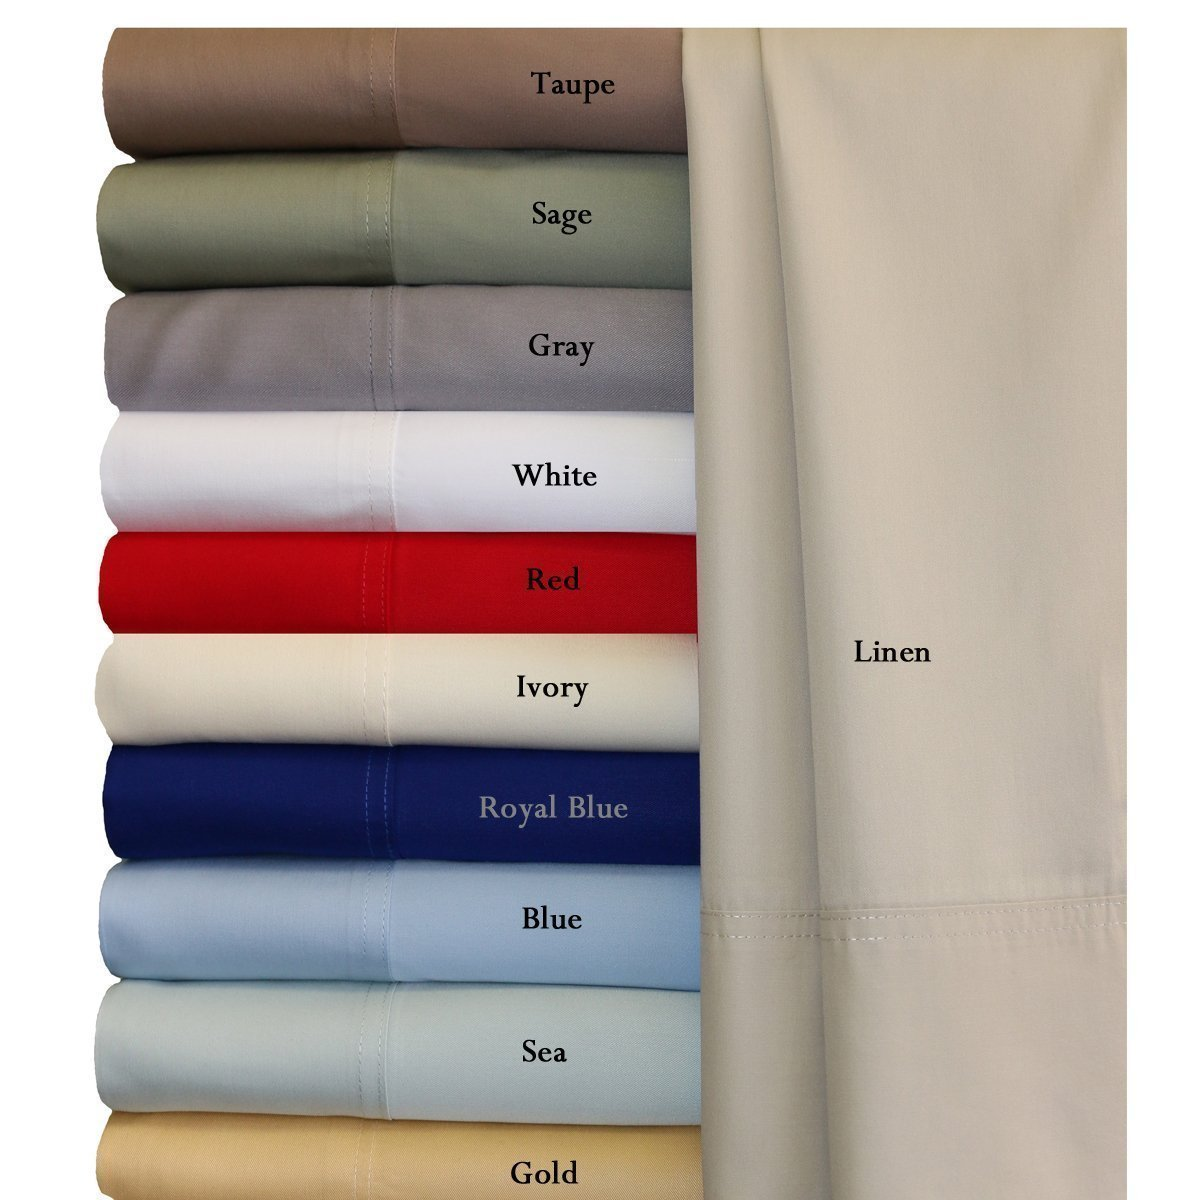 100% Bamboo Bed Sheet Set - Top Split King, Solid Periwinkle - Super Soft & Cool, Bamboo Viscose, 4PC Sheets